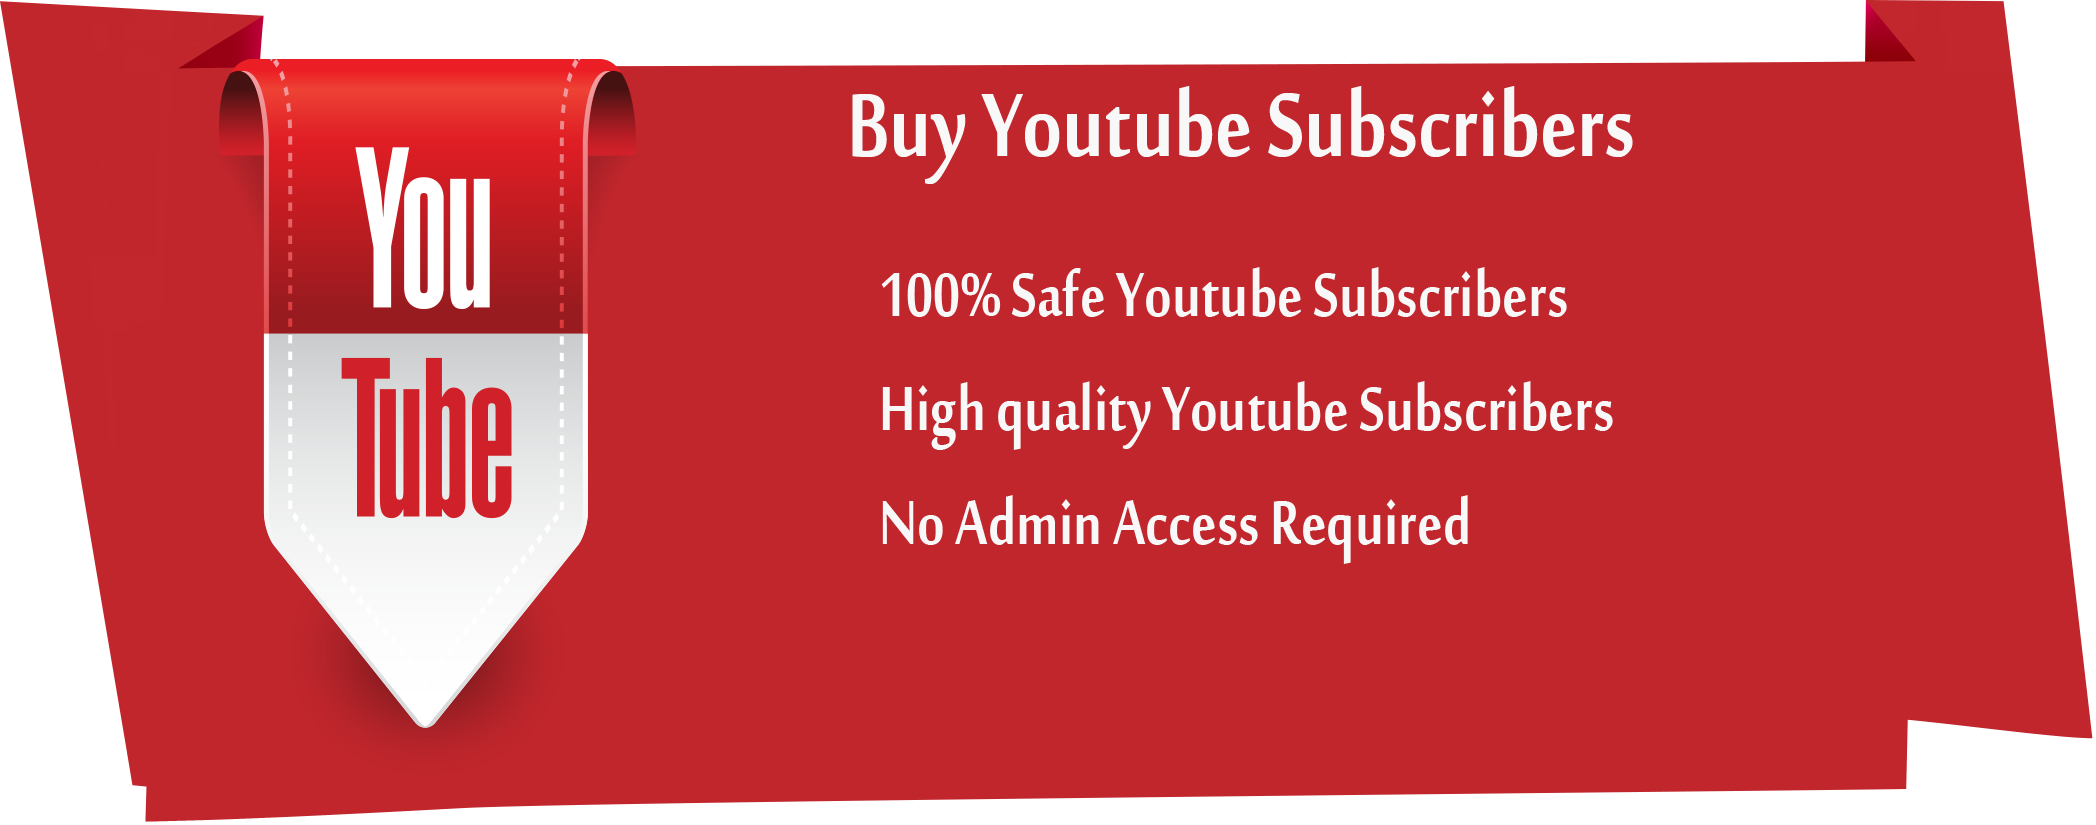 1250+ YouTube Subscribers In 24-36 Hours